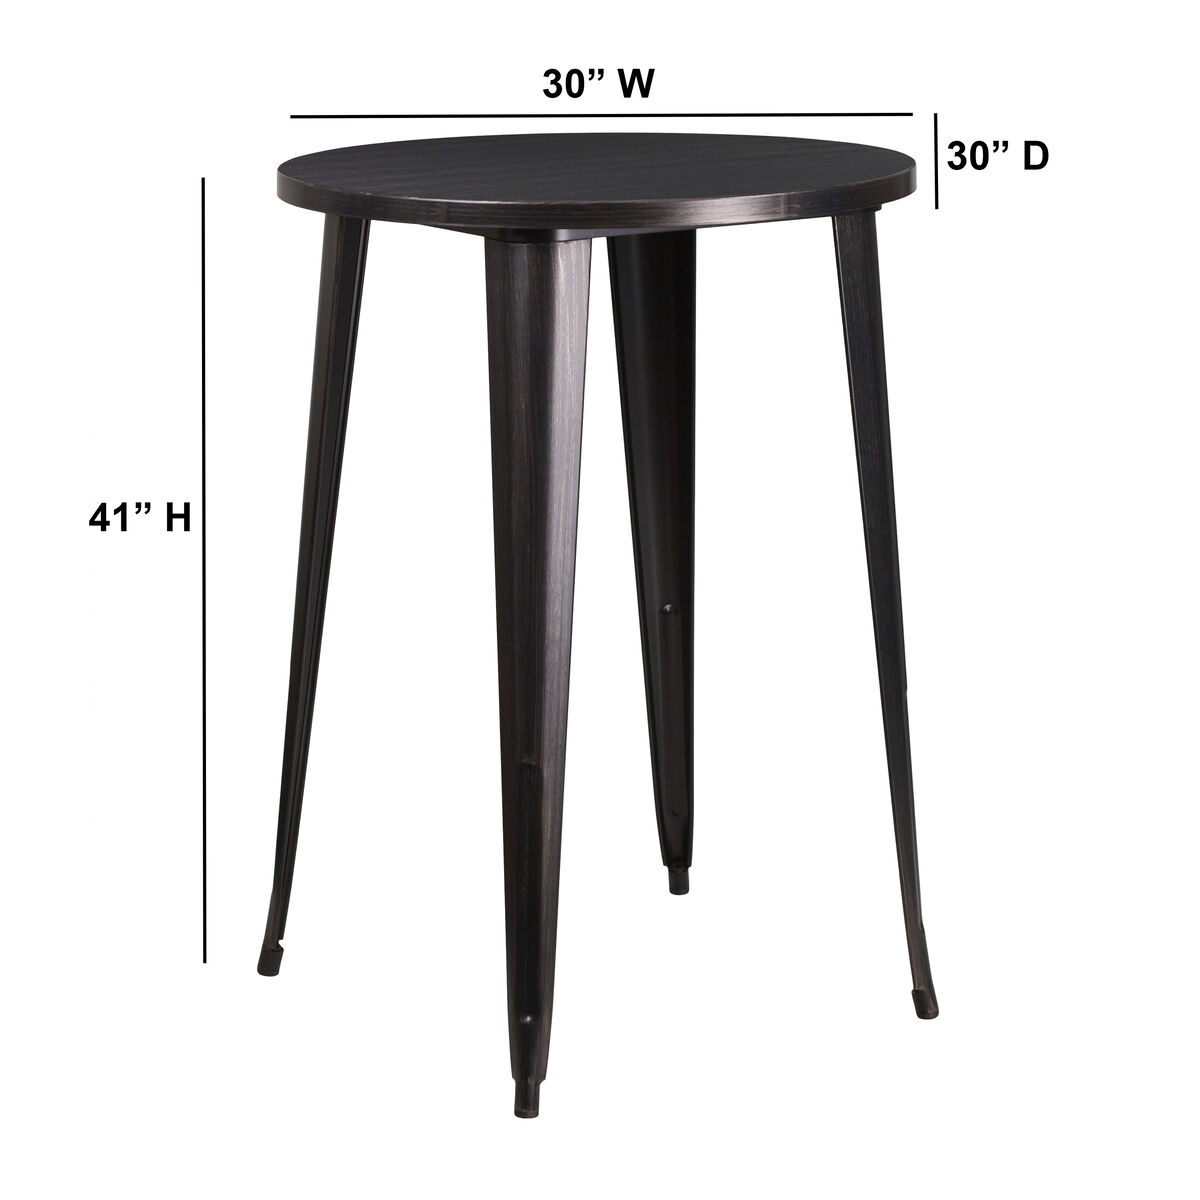 Our 30 Round Black Antique Gold Metal Indoor Outdoor Bar Height Table